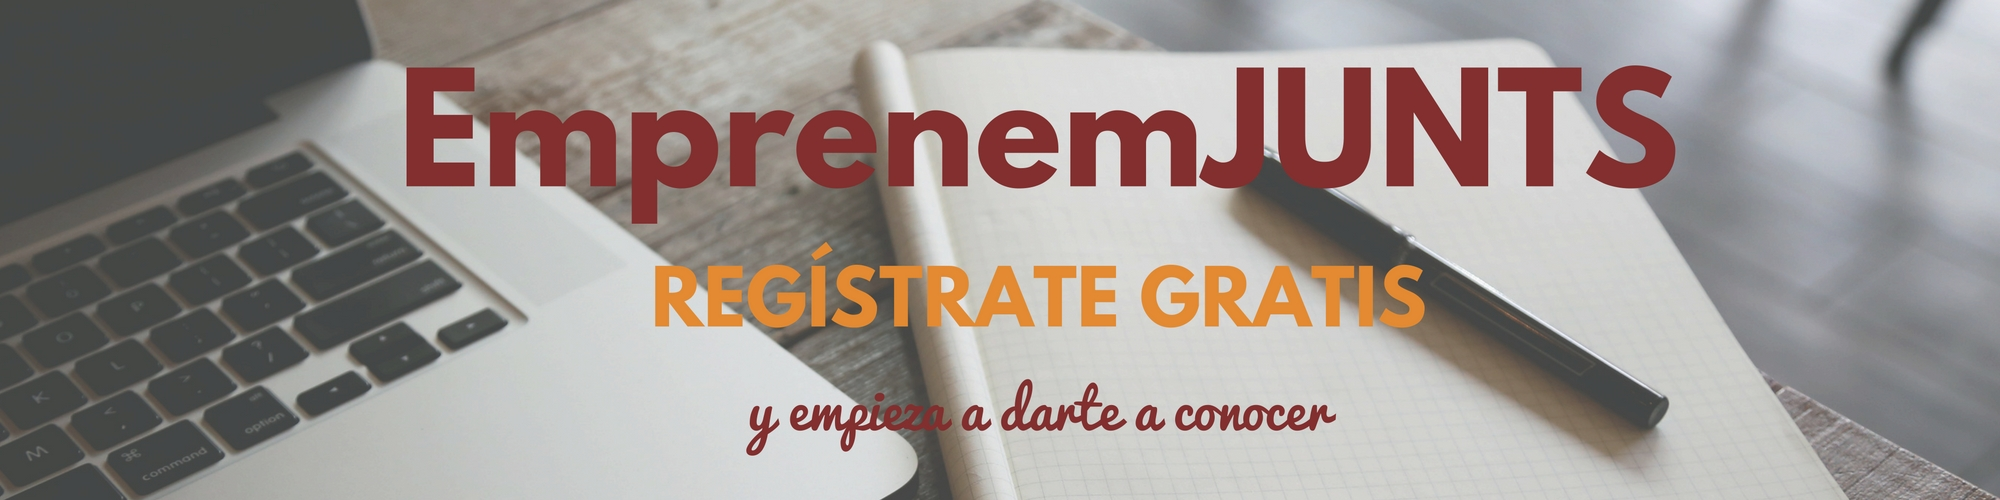 Banner registro Emprenemjunts